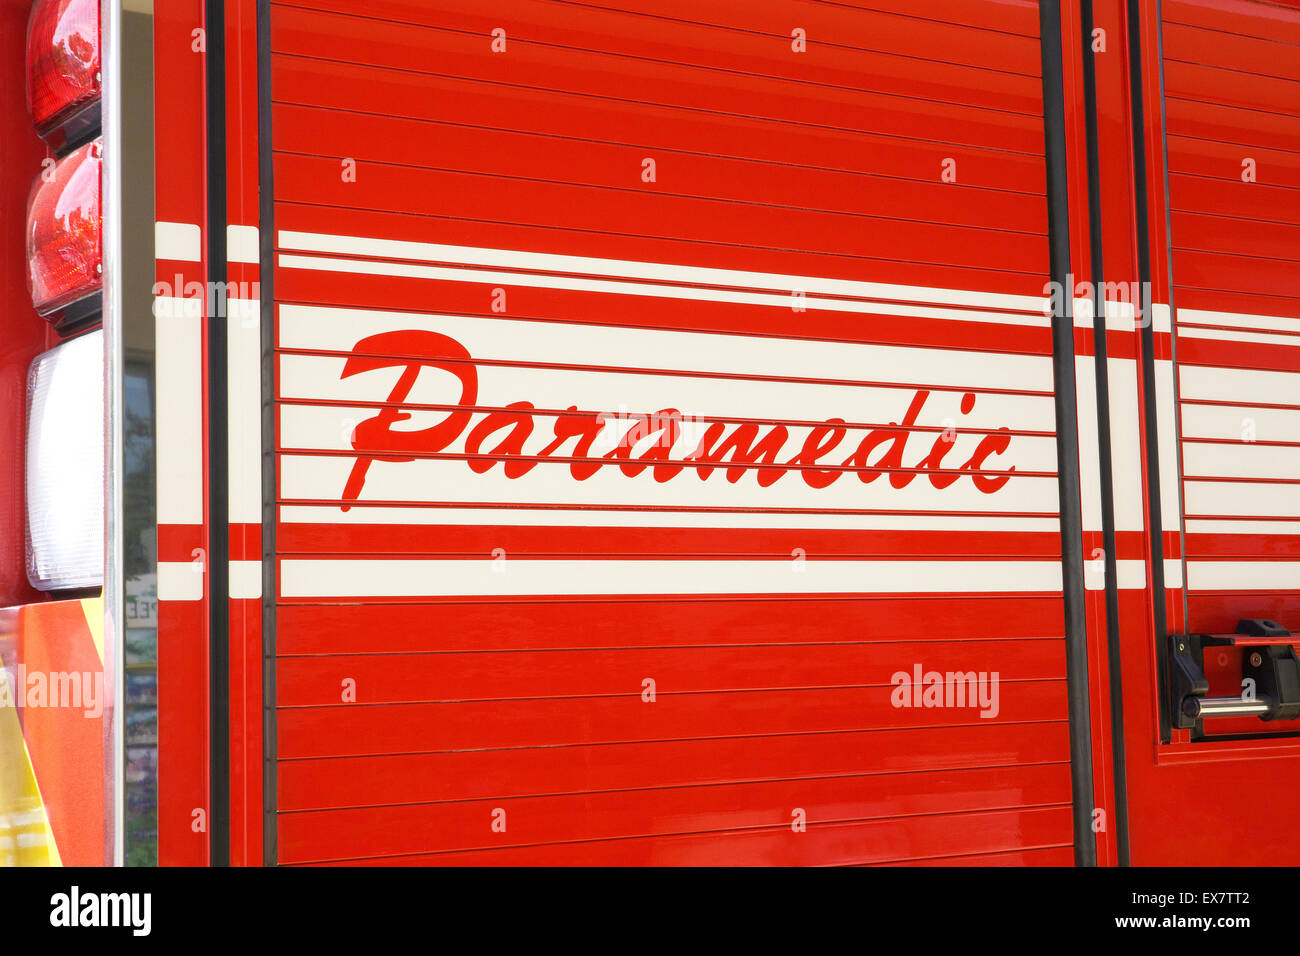 Paramedic ambulance - Stock Image